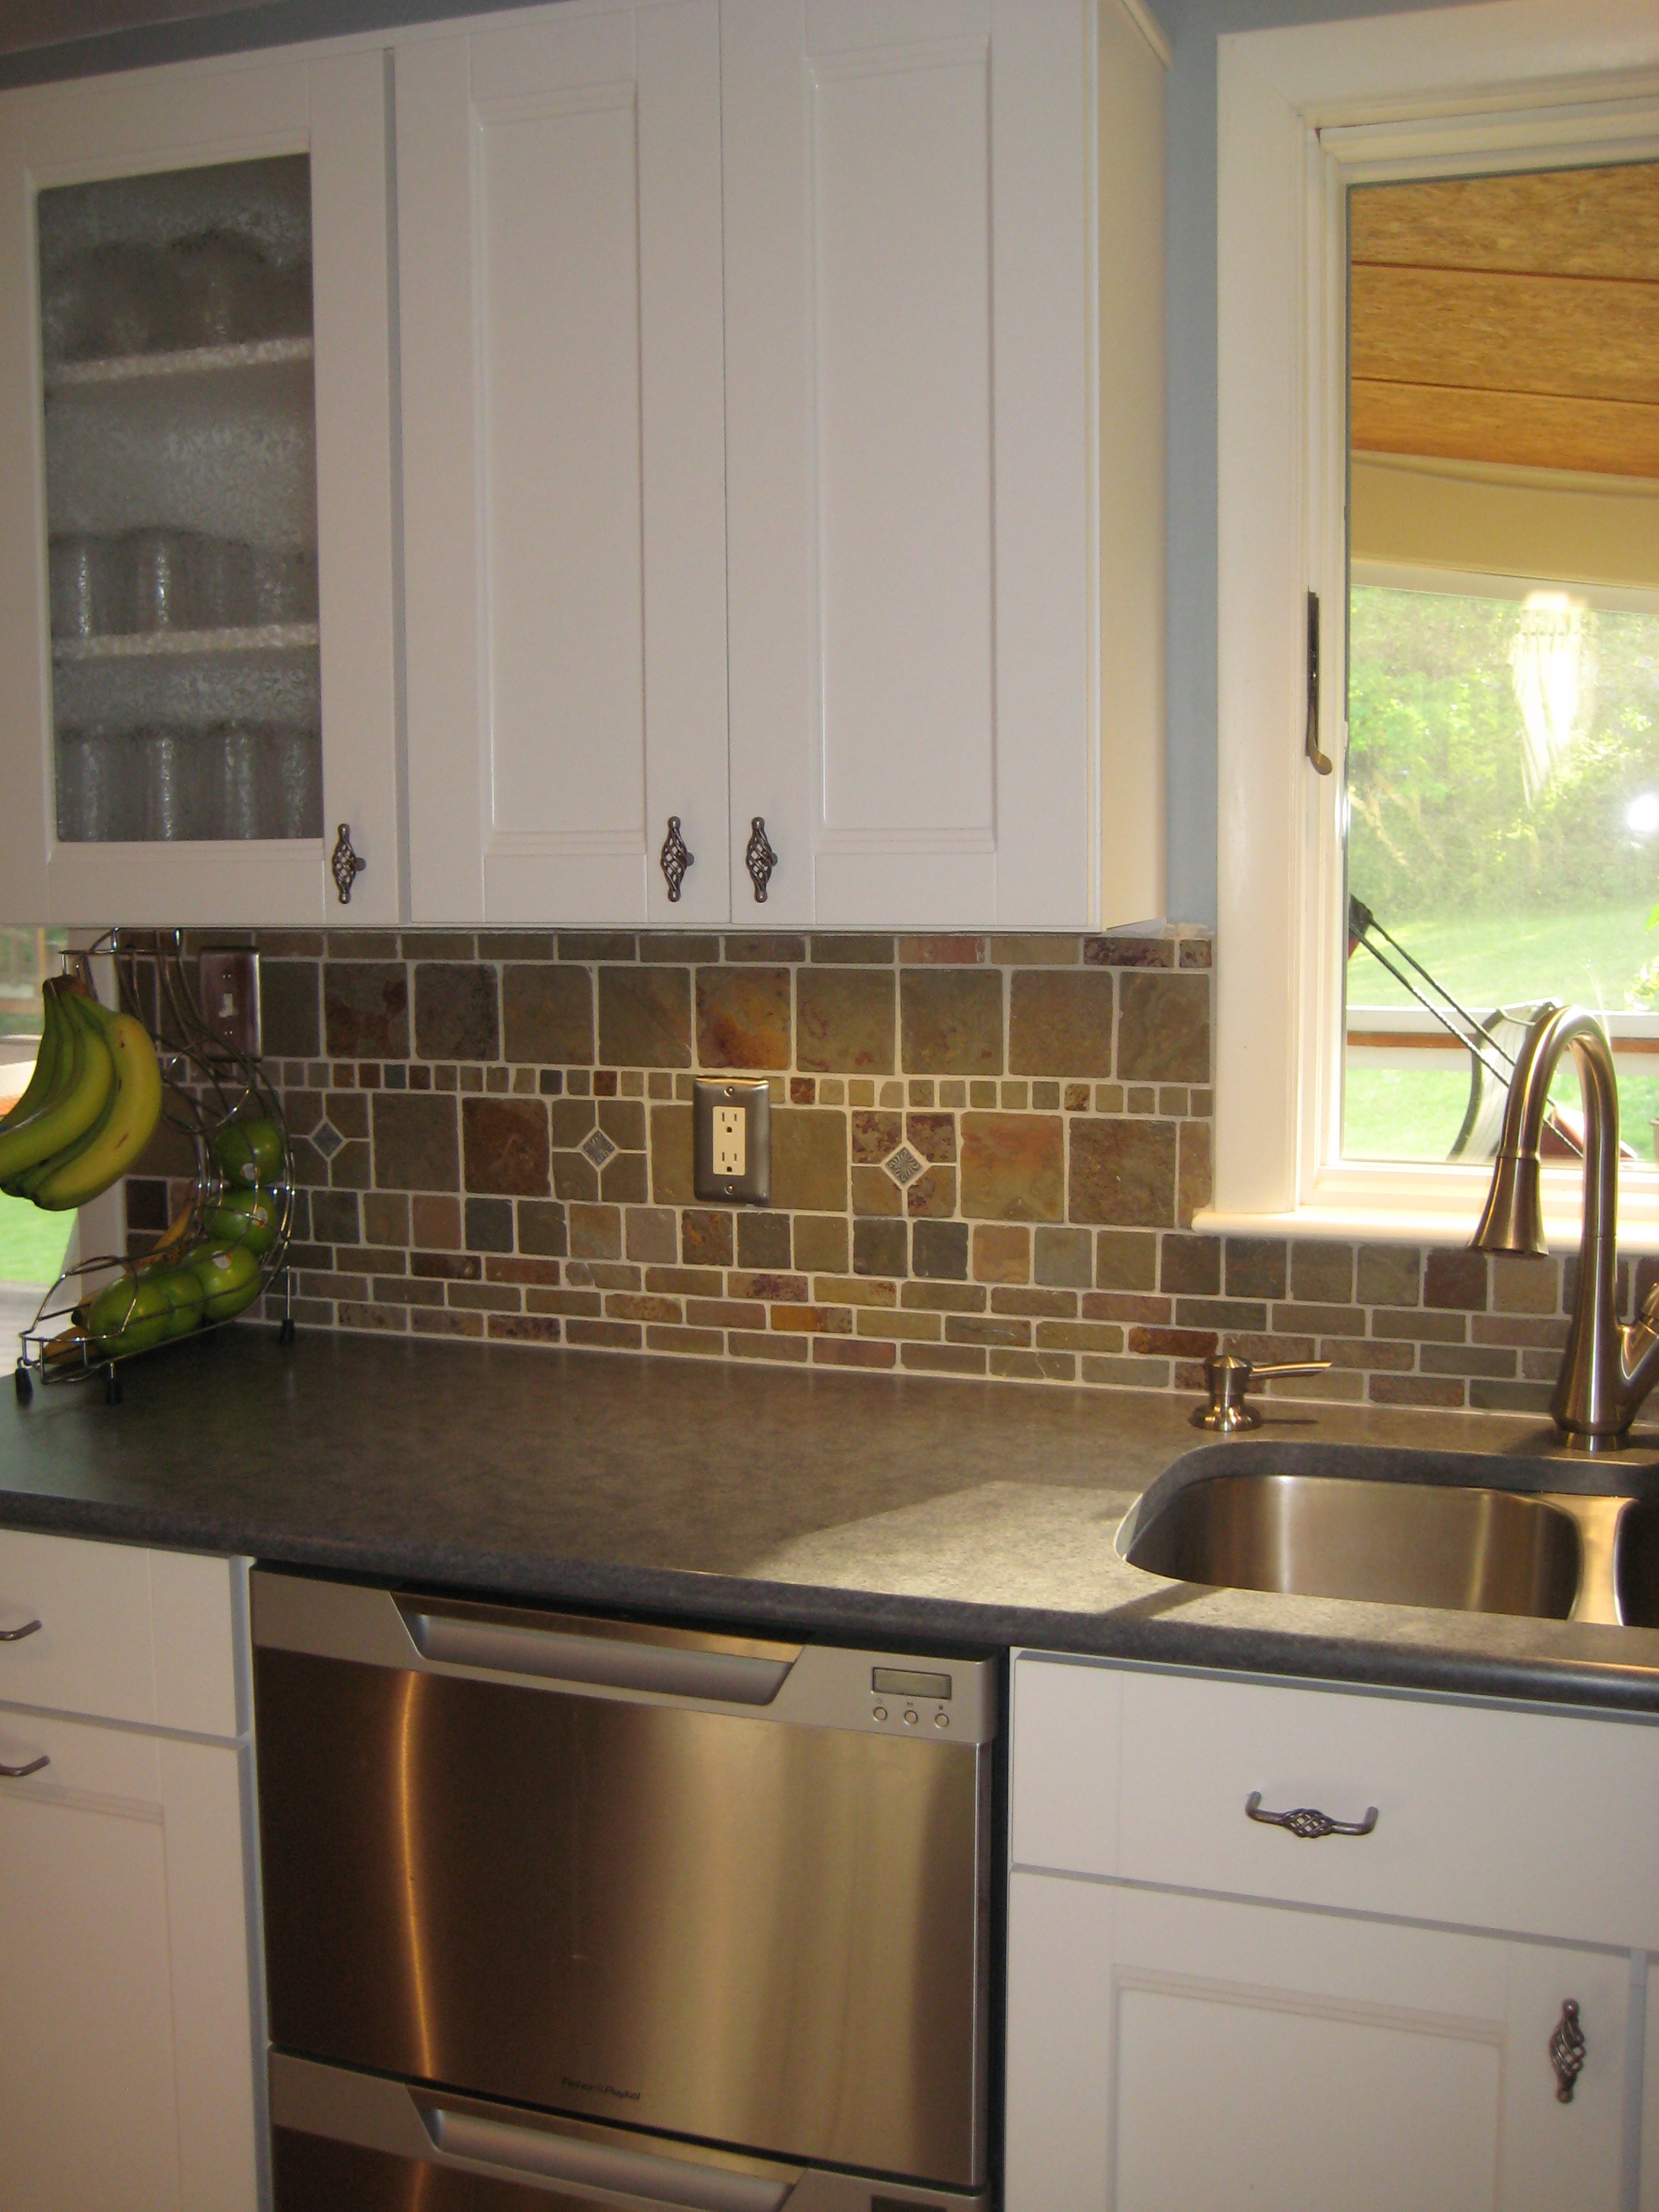 Rustic Kitchen Backsplash Ideas